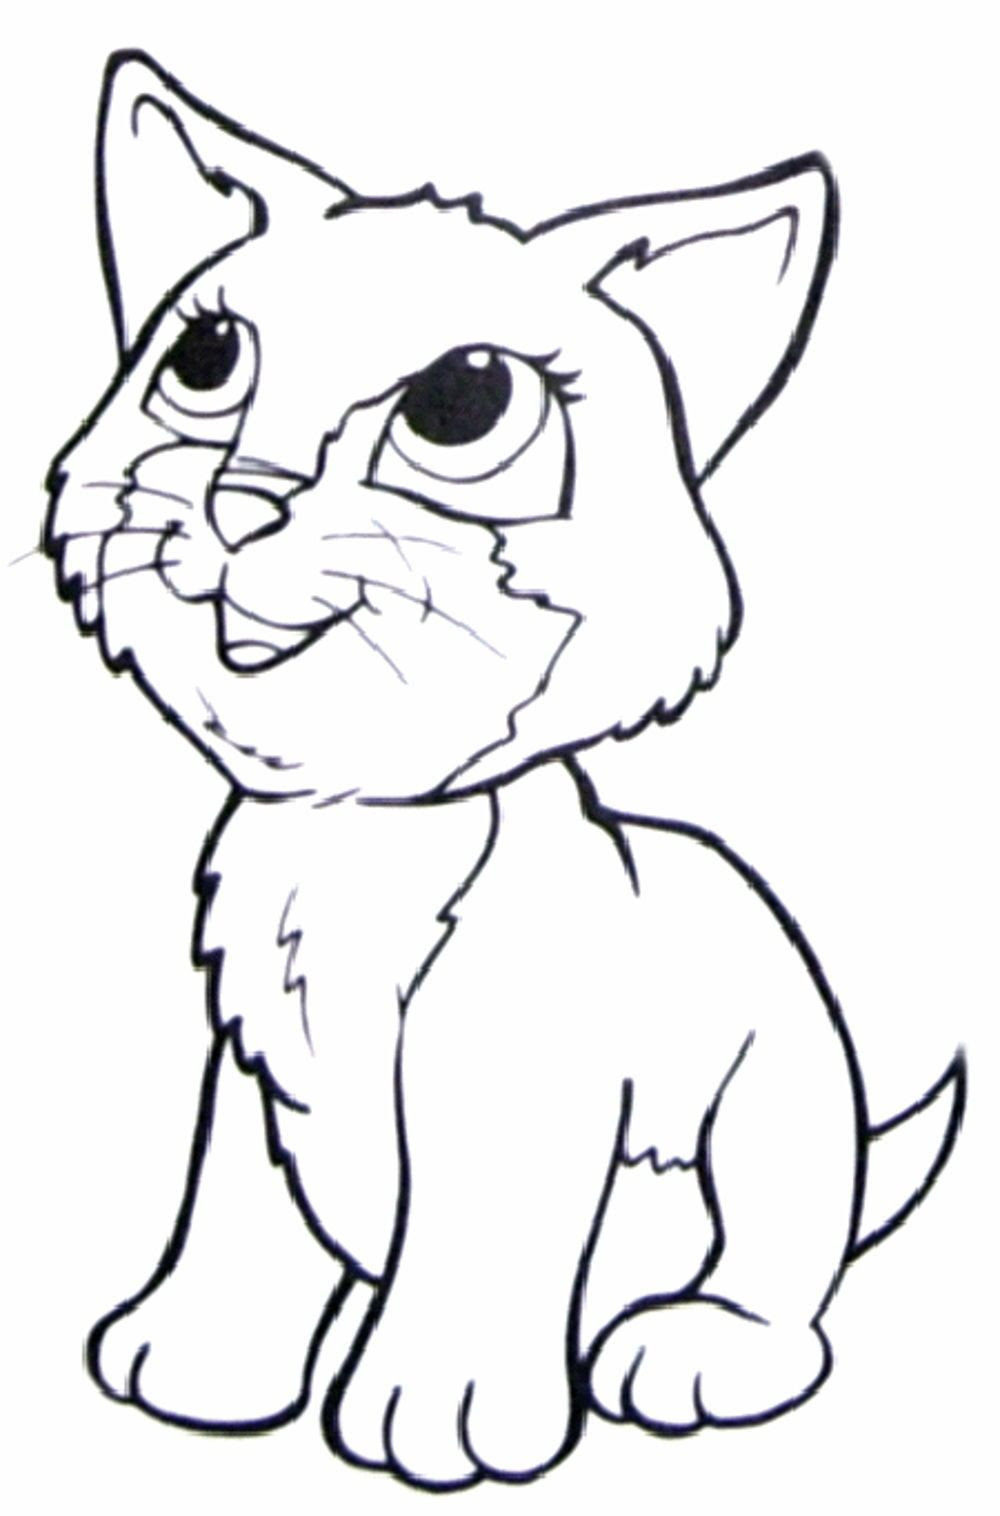 Siamese Cat Coloring Page at GetColorings.com   Free ...